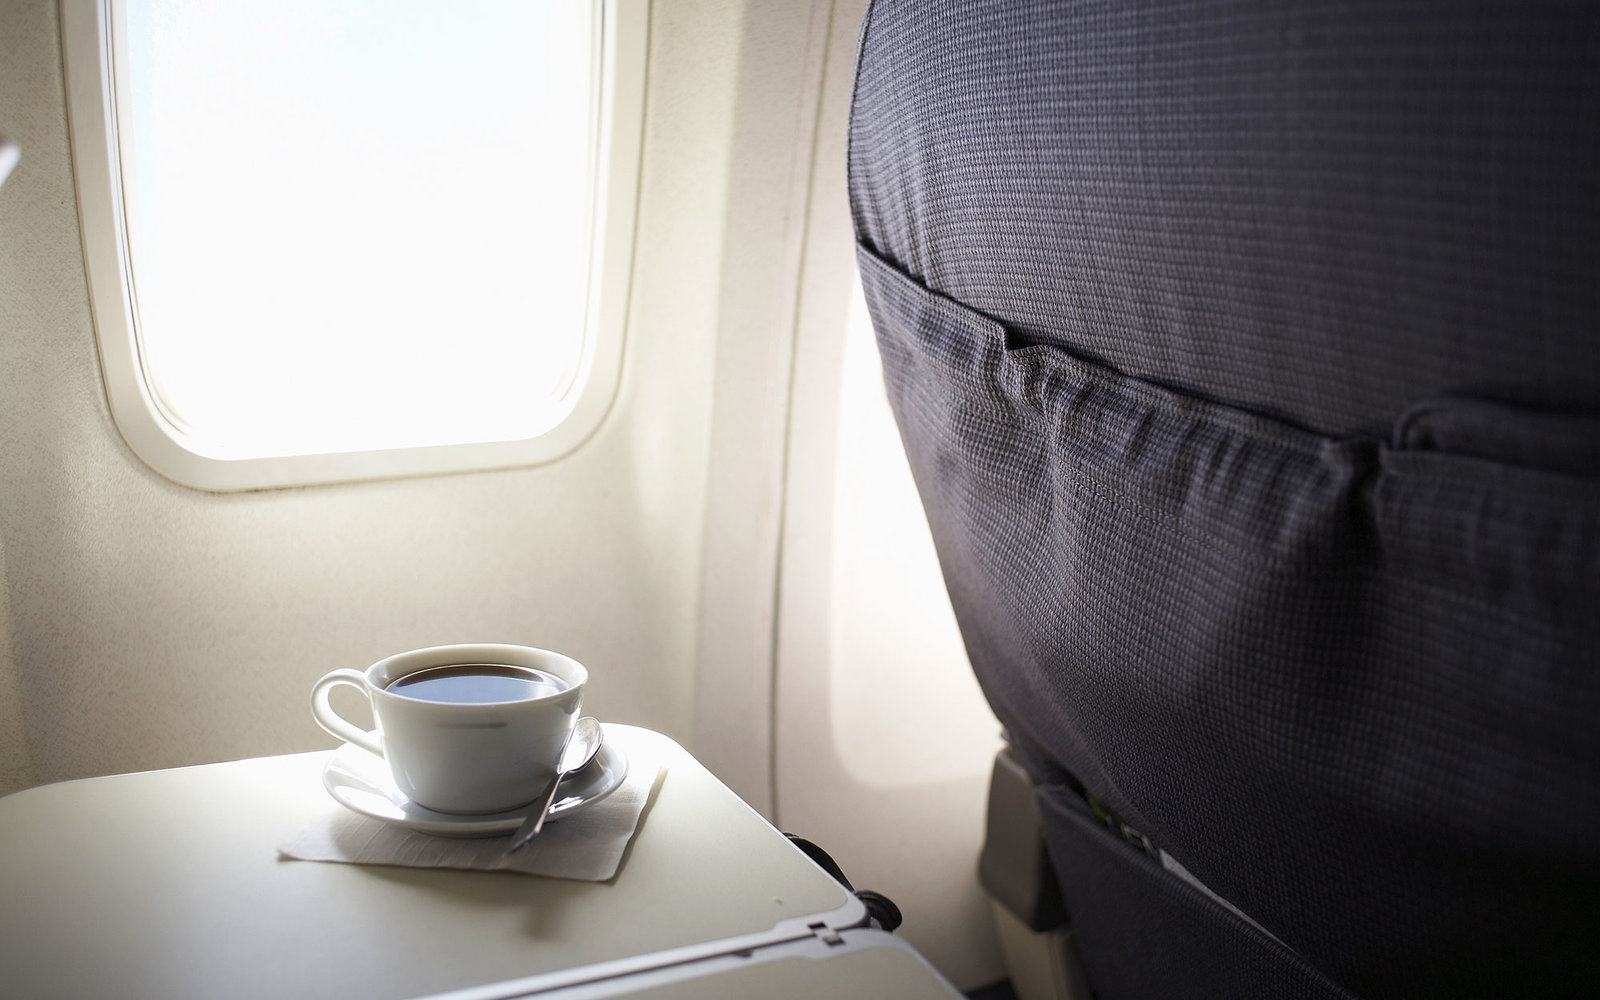 Cup of coffee on airplane tray table by window, elevated view